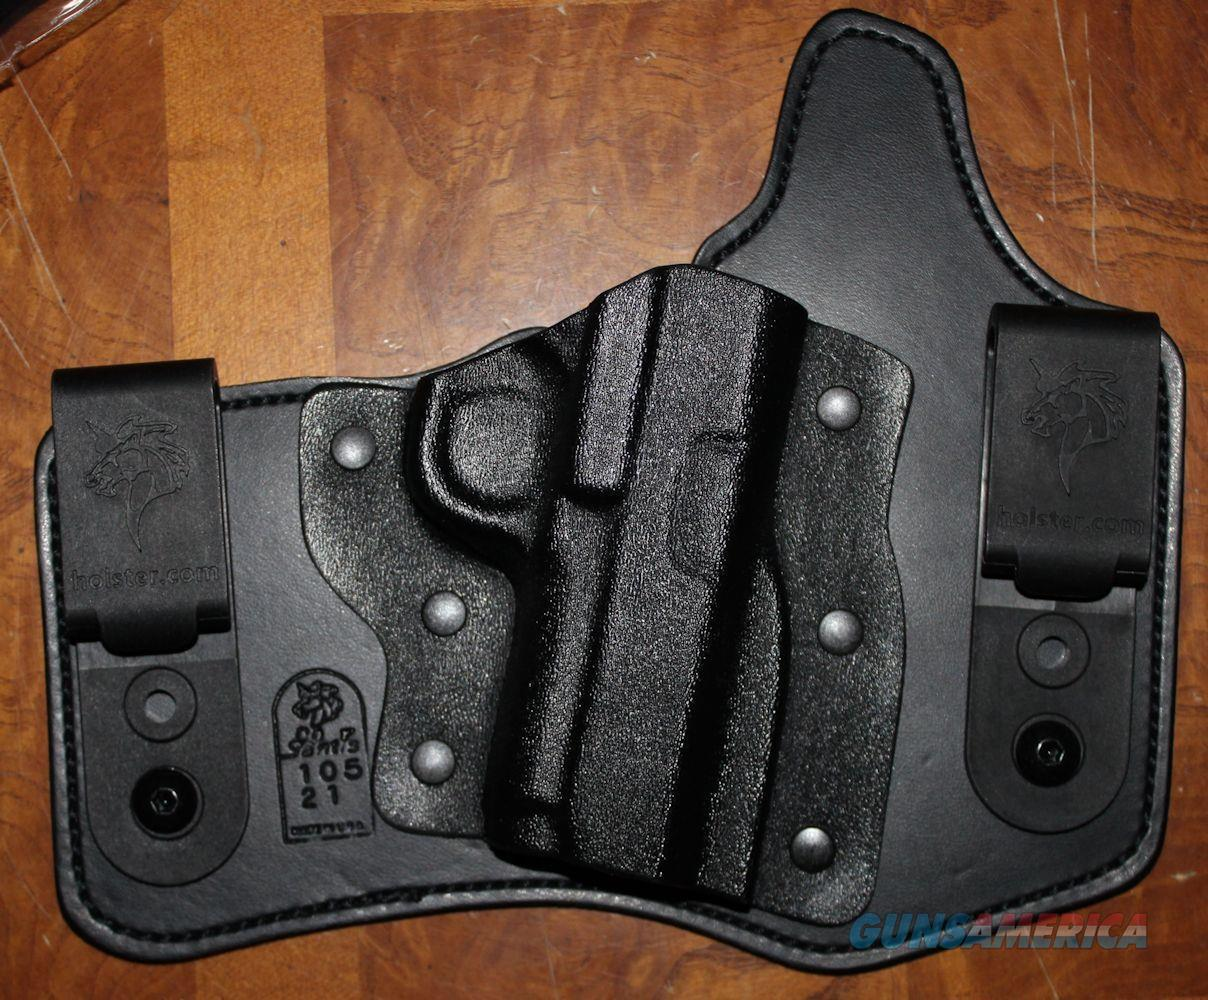 DeSantis Intruder IWB Concealment Holster Colt Springfield See Descrip 105KA21Z0  Non-Guns > Holsters and Gunleather > Concealed Carry